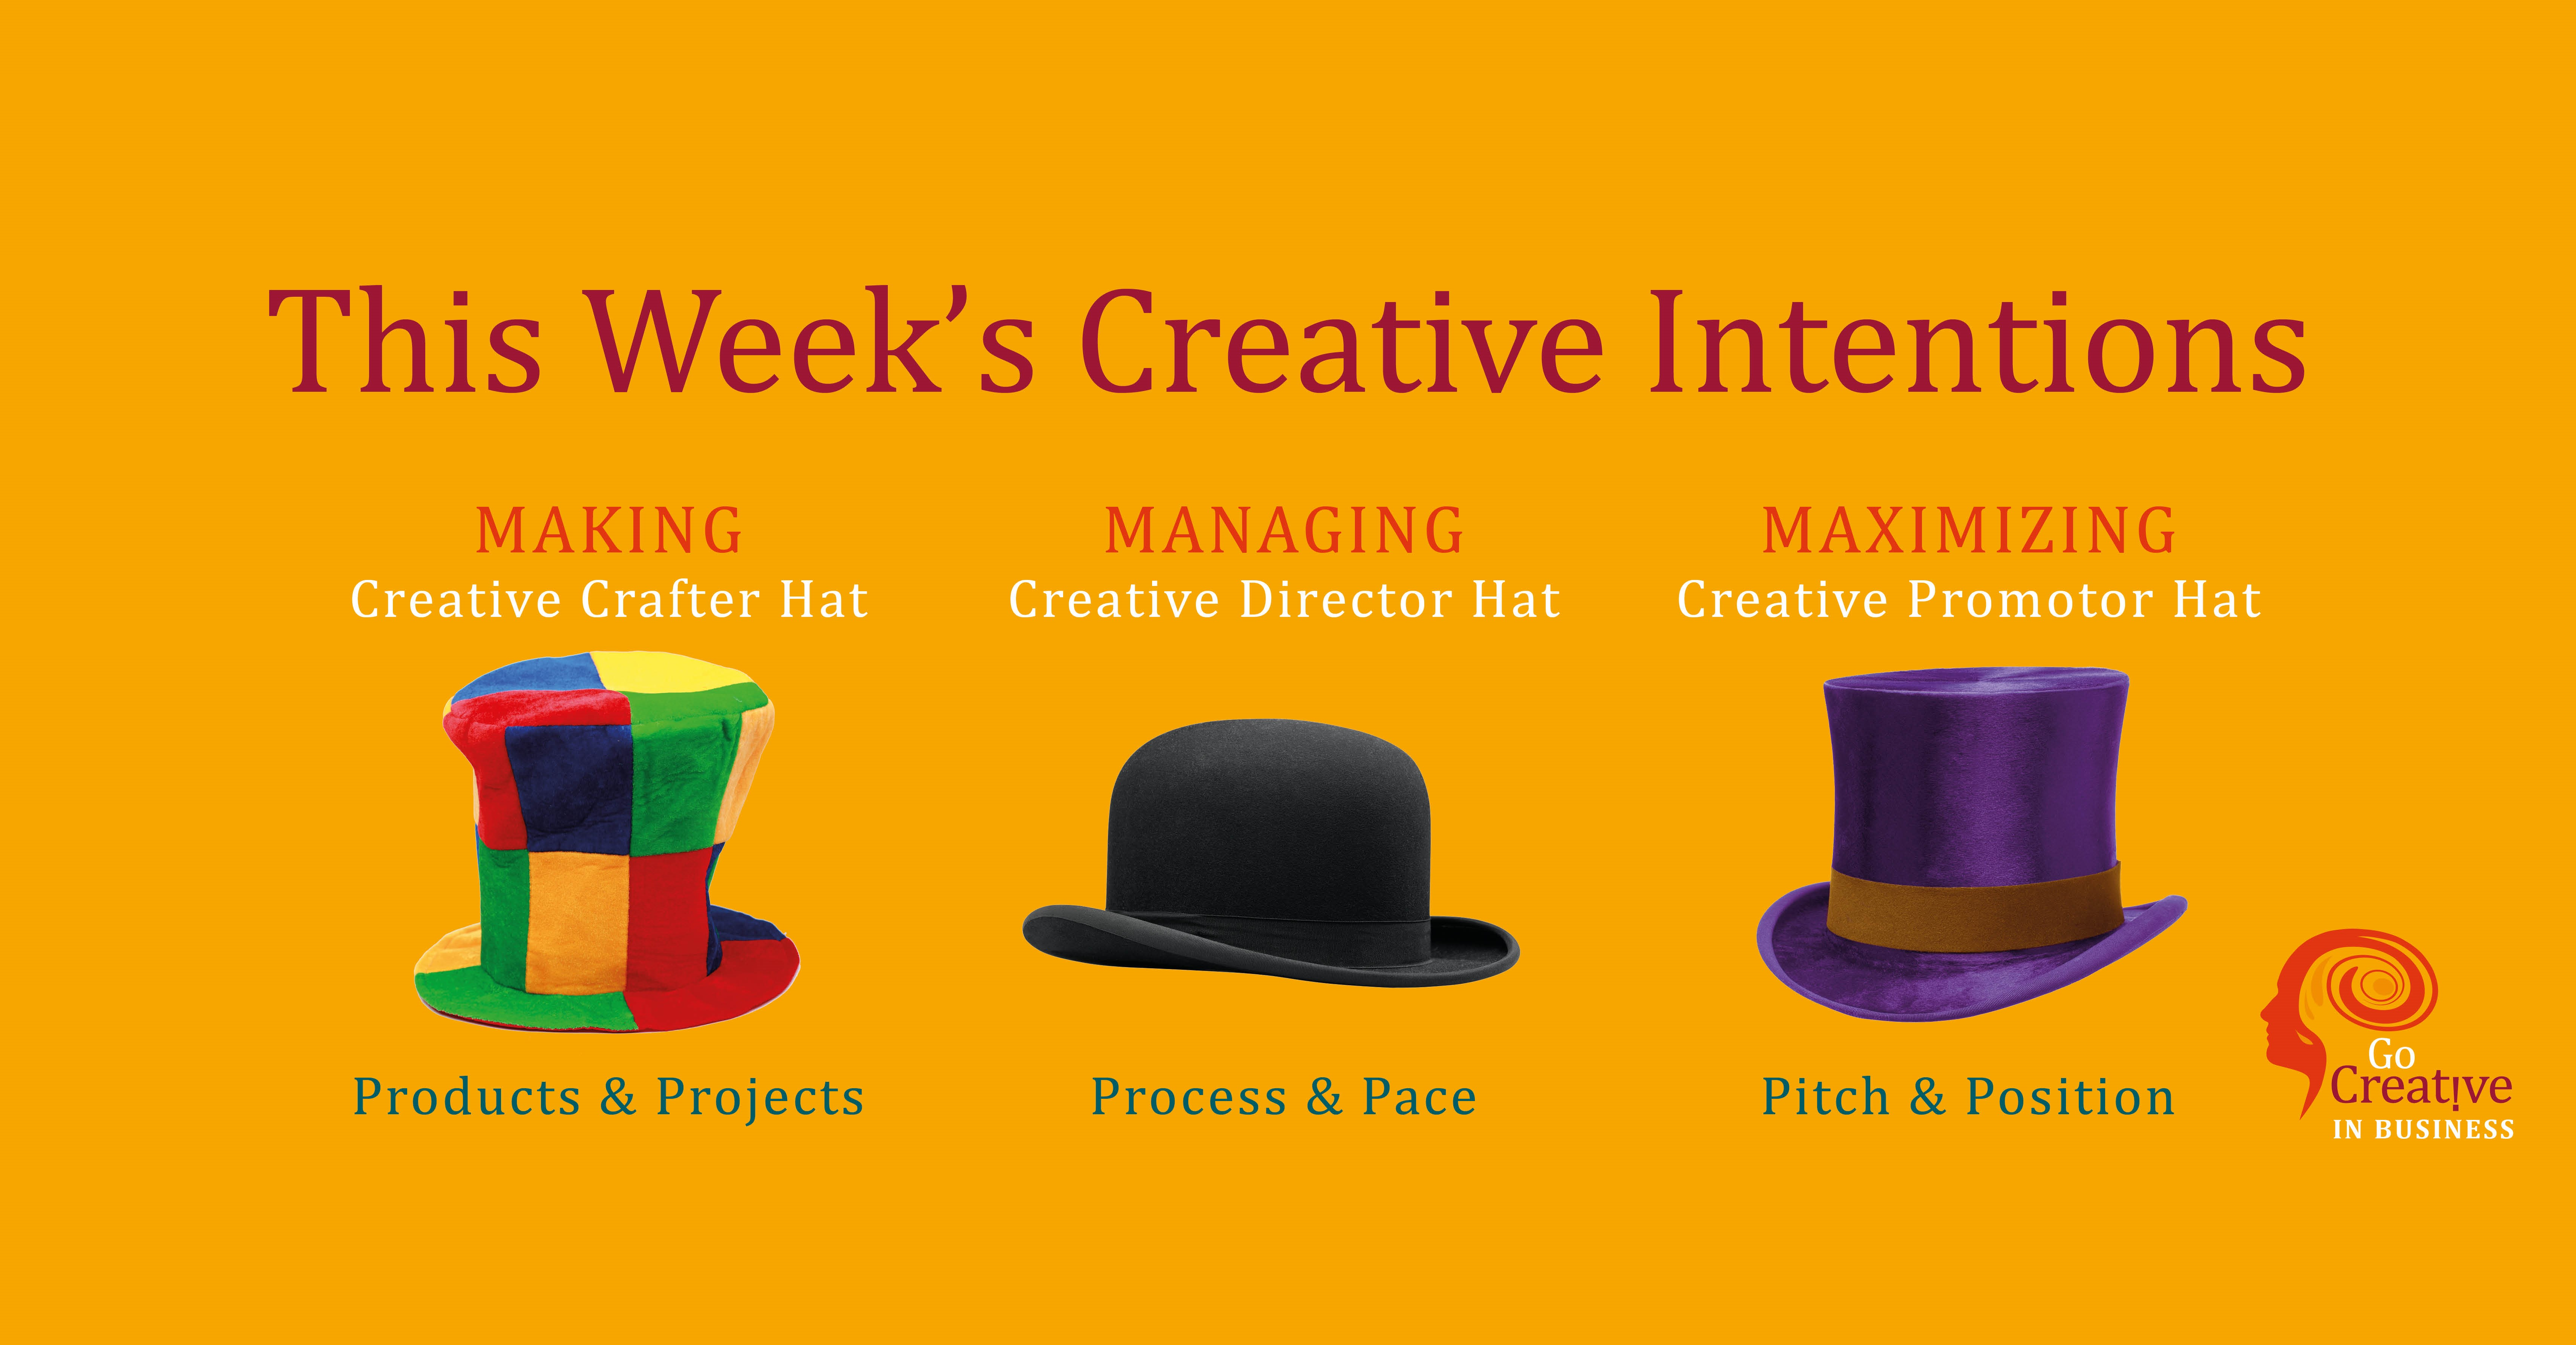 Creative Intentions Week 44 2019